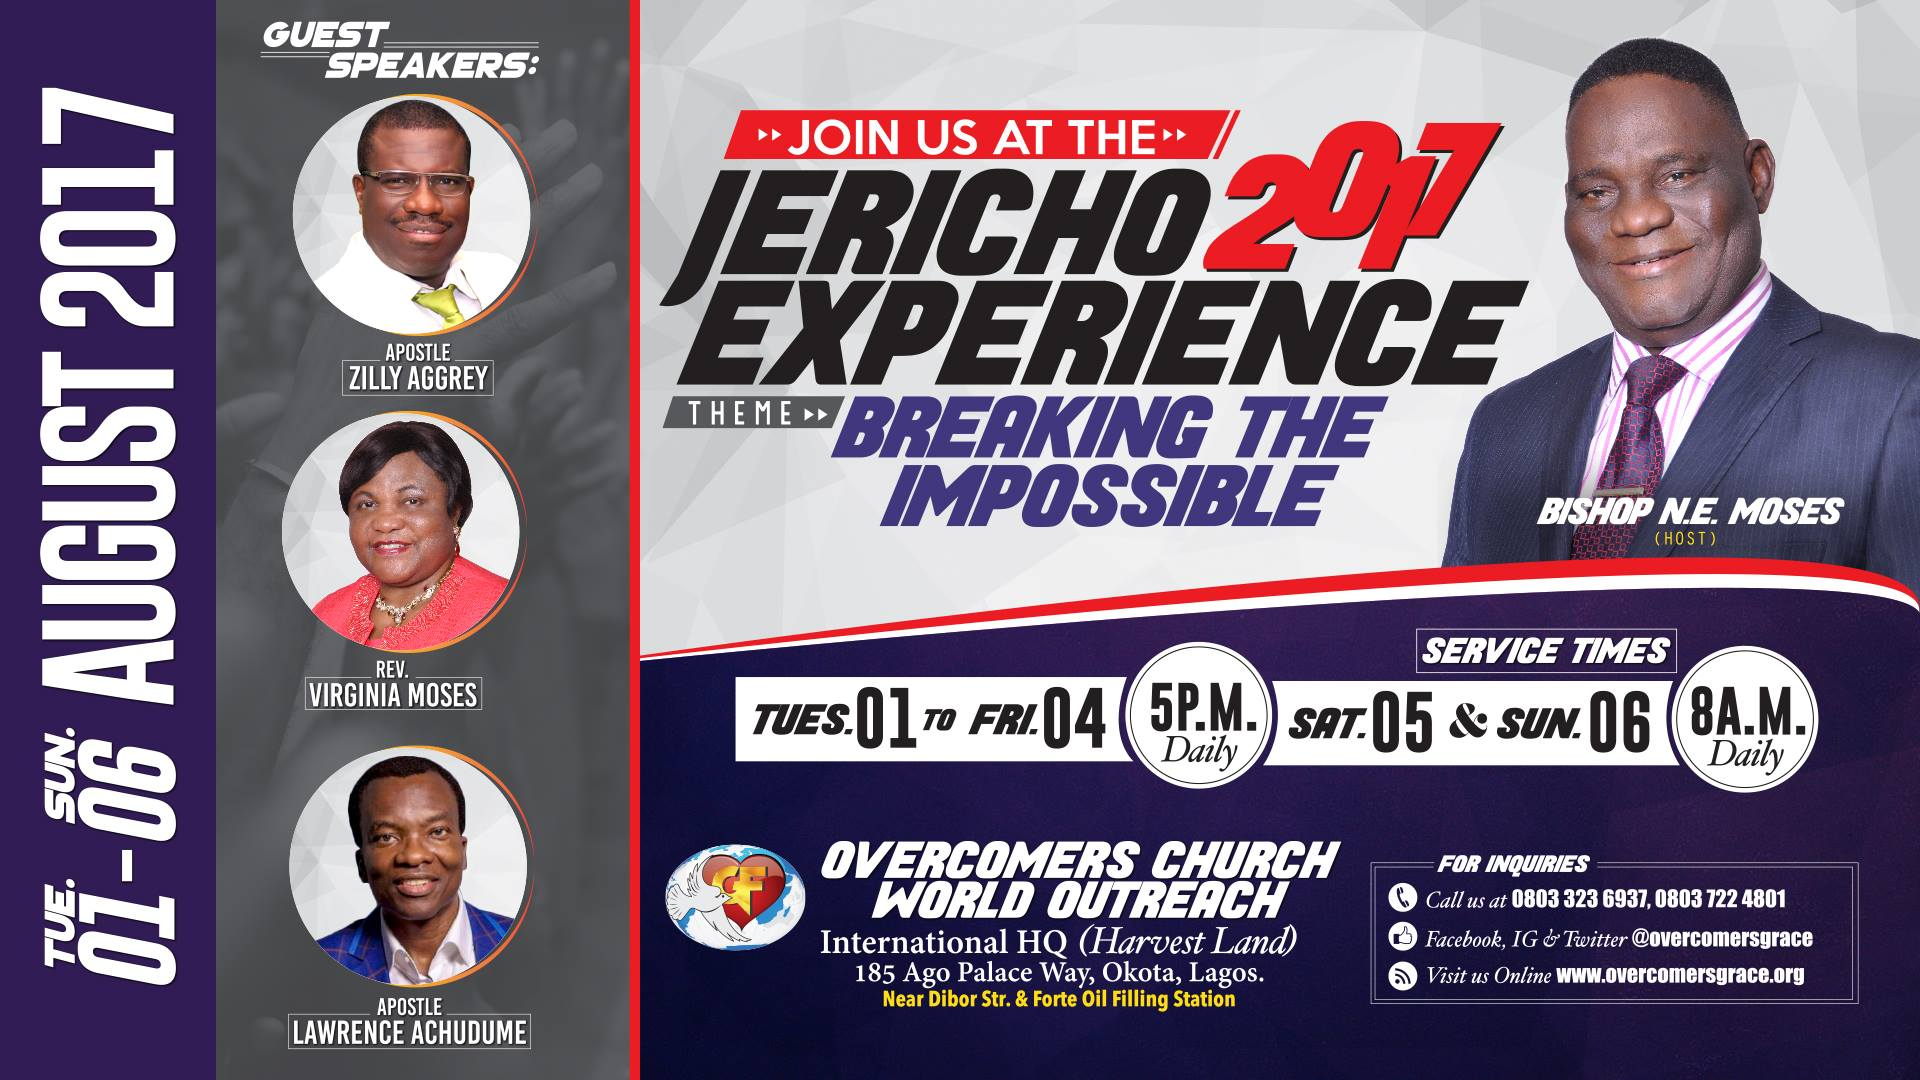 Jericho Experience 2017: Breaking the Impossible